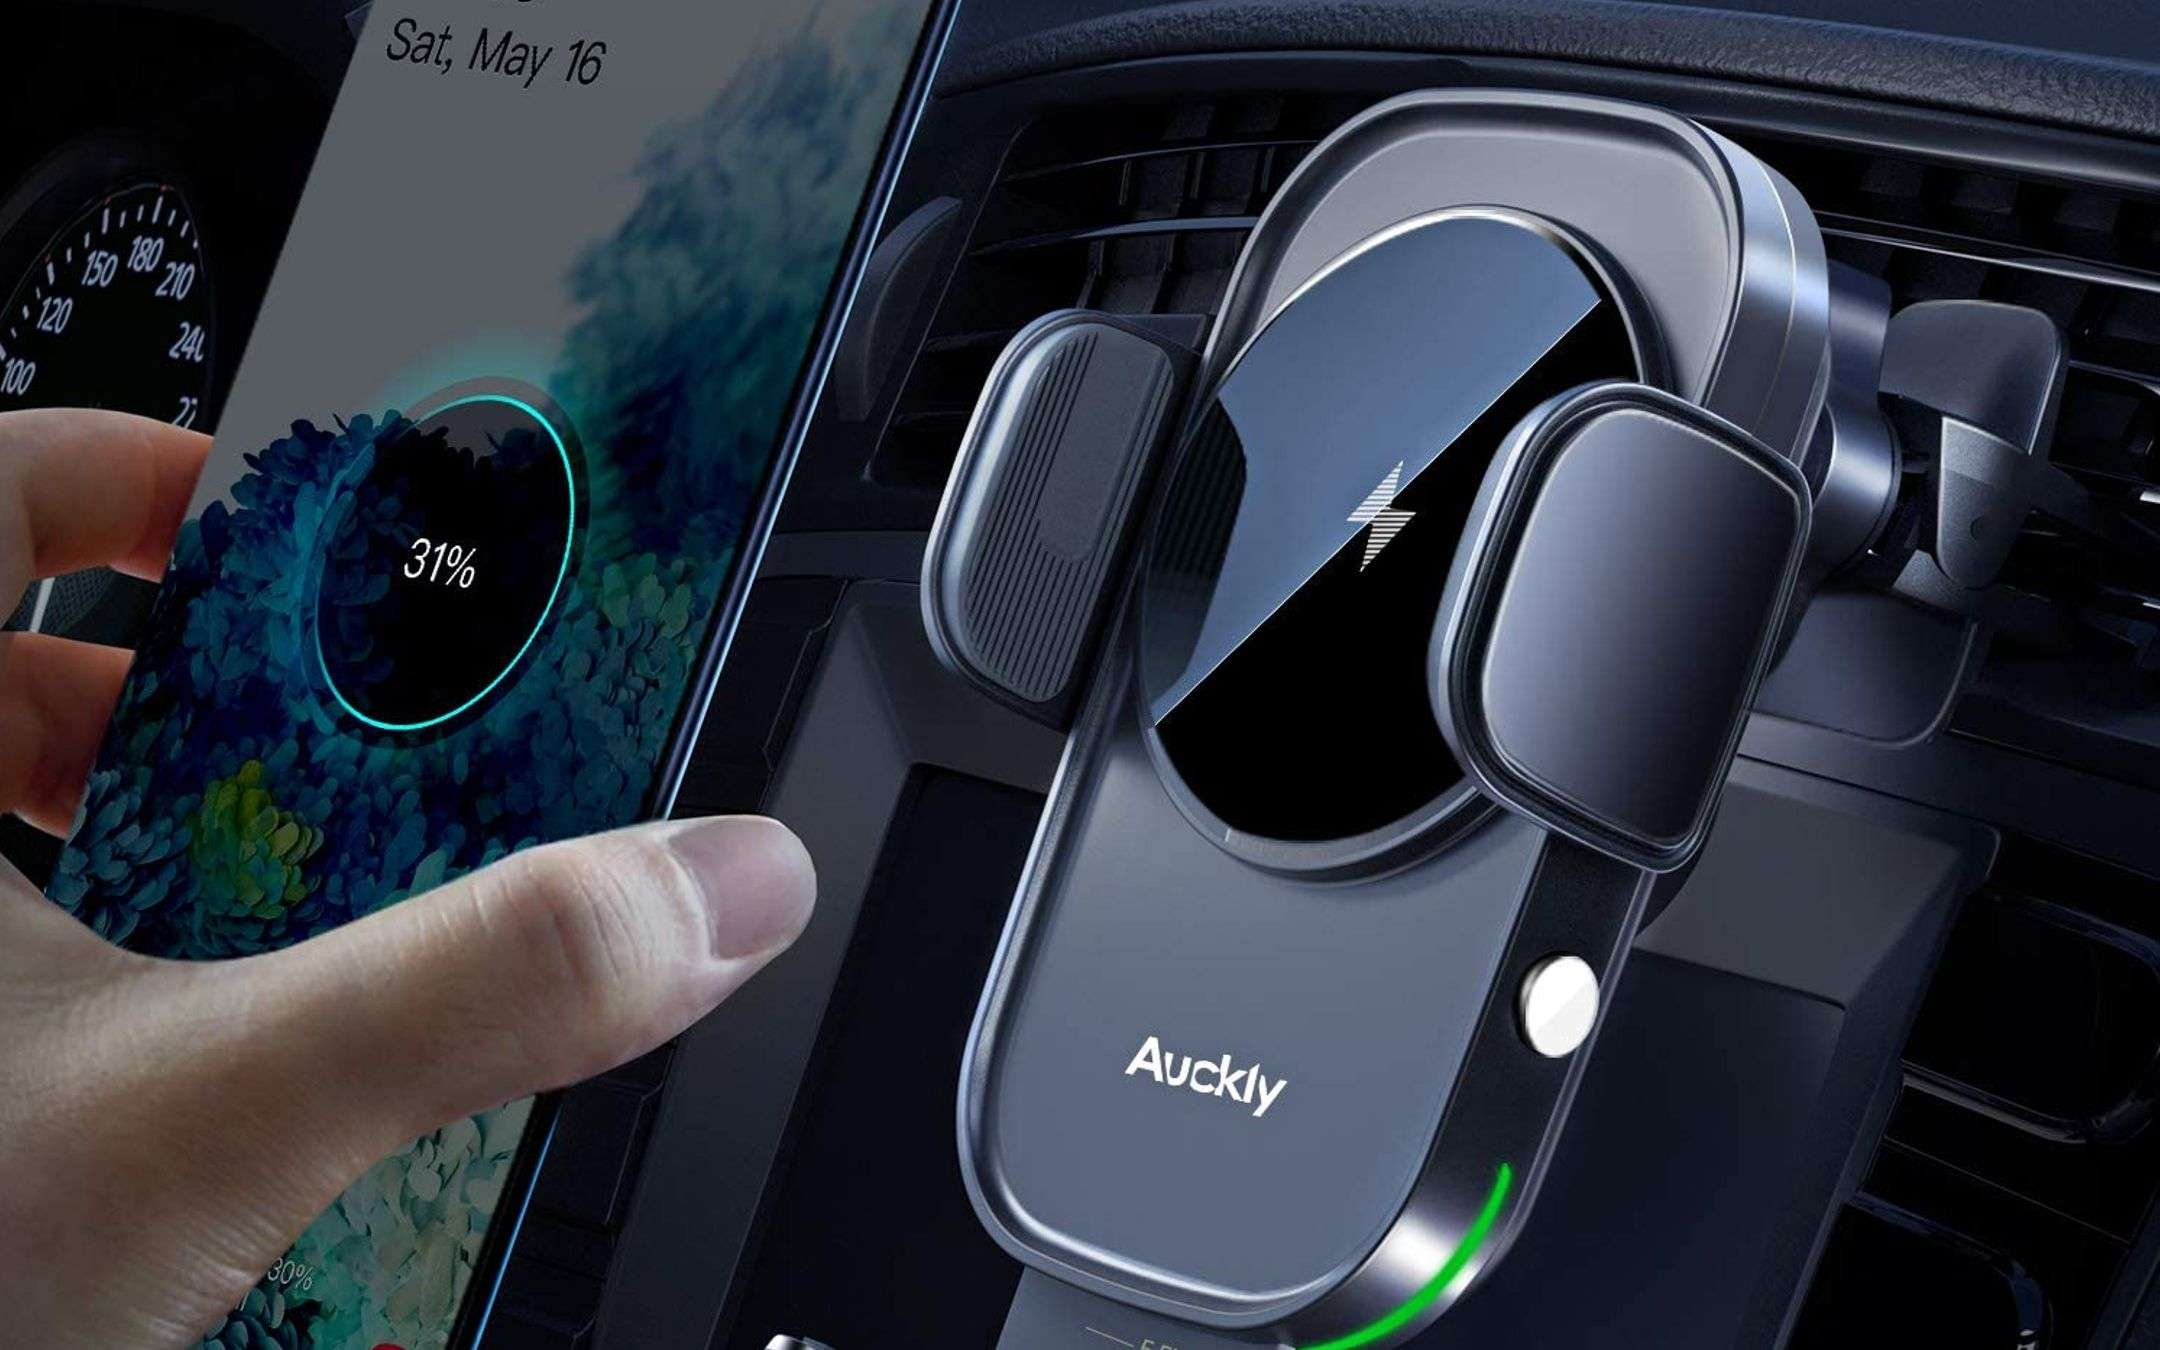 Auckly, the car holder with wireless charging